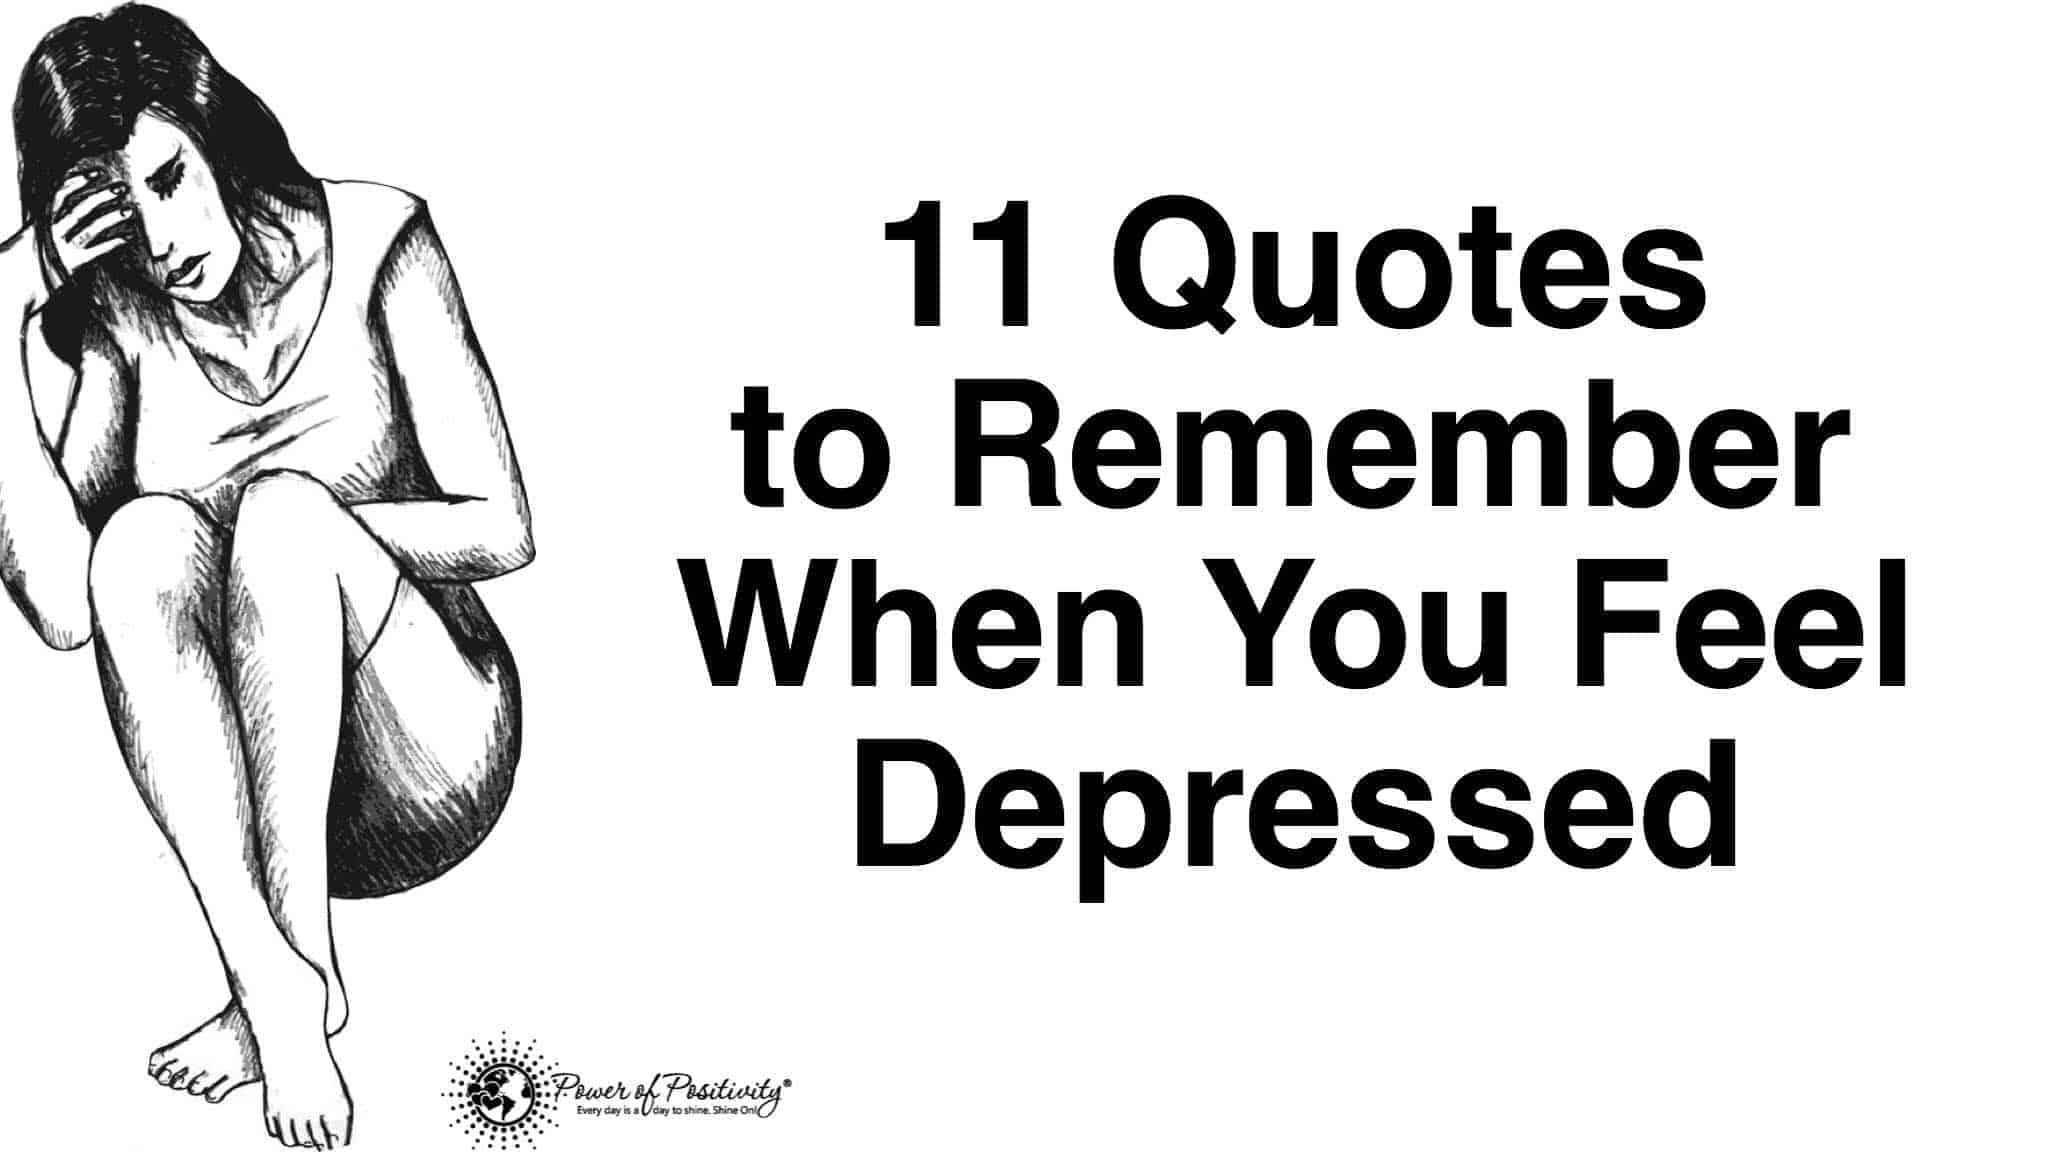 11 Quotes To Remember When You Feel Depressed